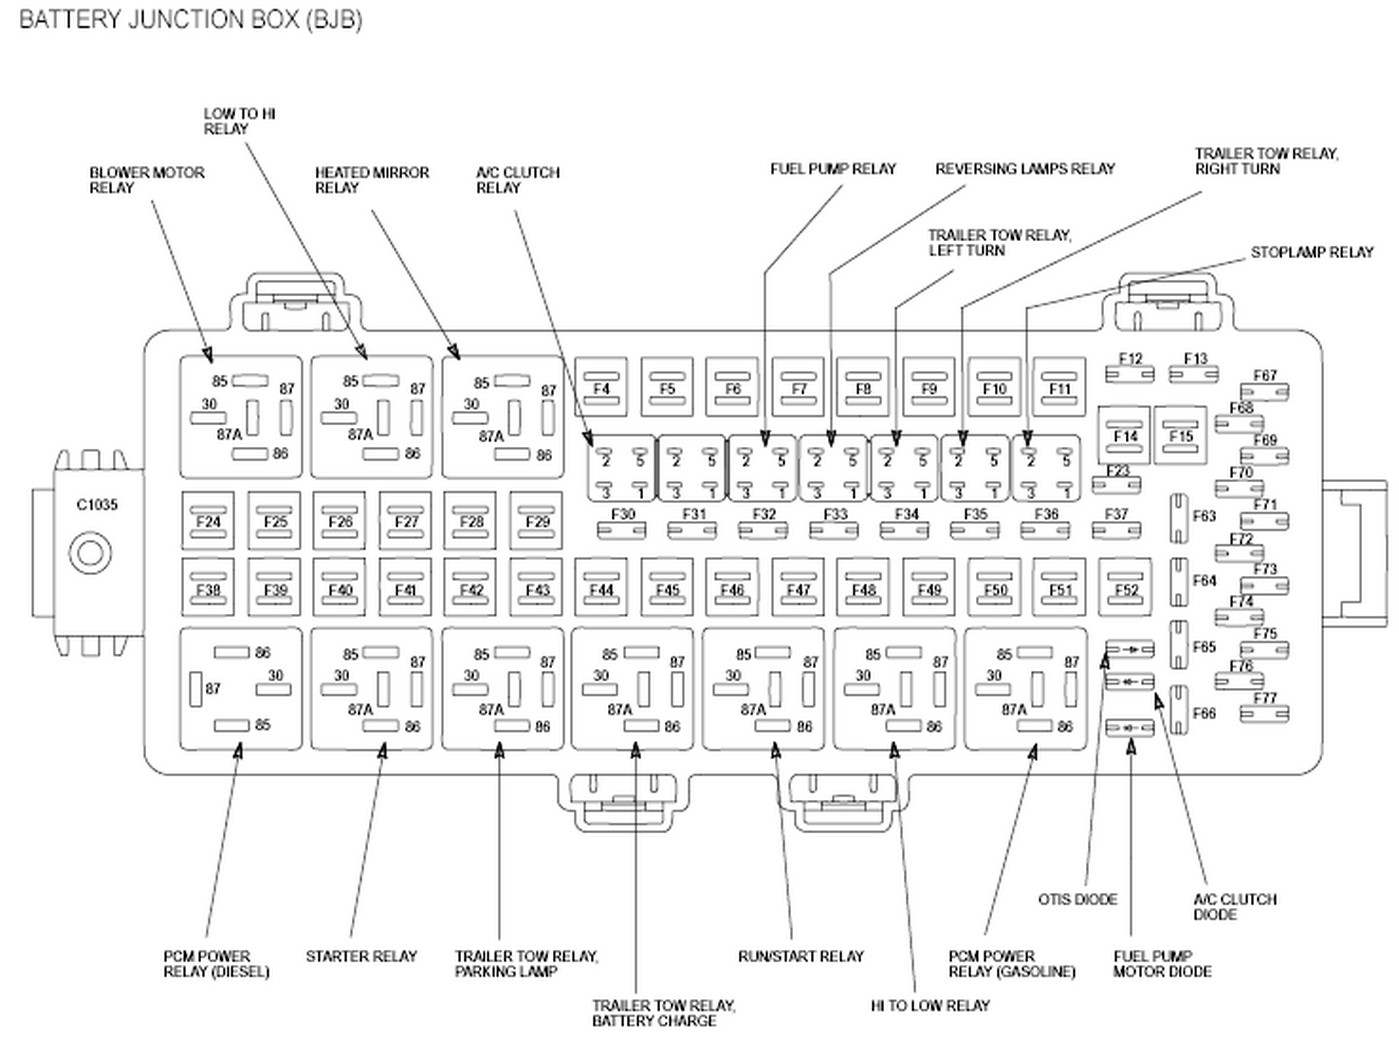 hight resolution of interior fuse box location ford f250 super duty 2011 wiring 1999 super duty fuse diagram fuse box diagram for 2008 ford super duty